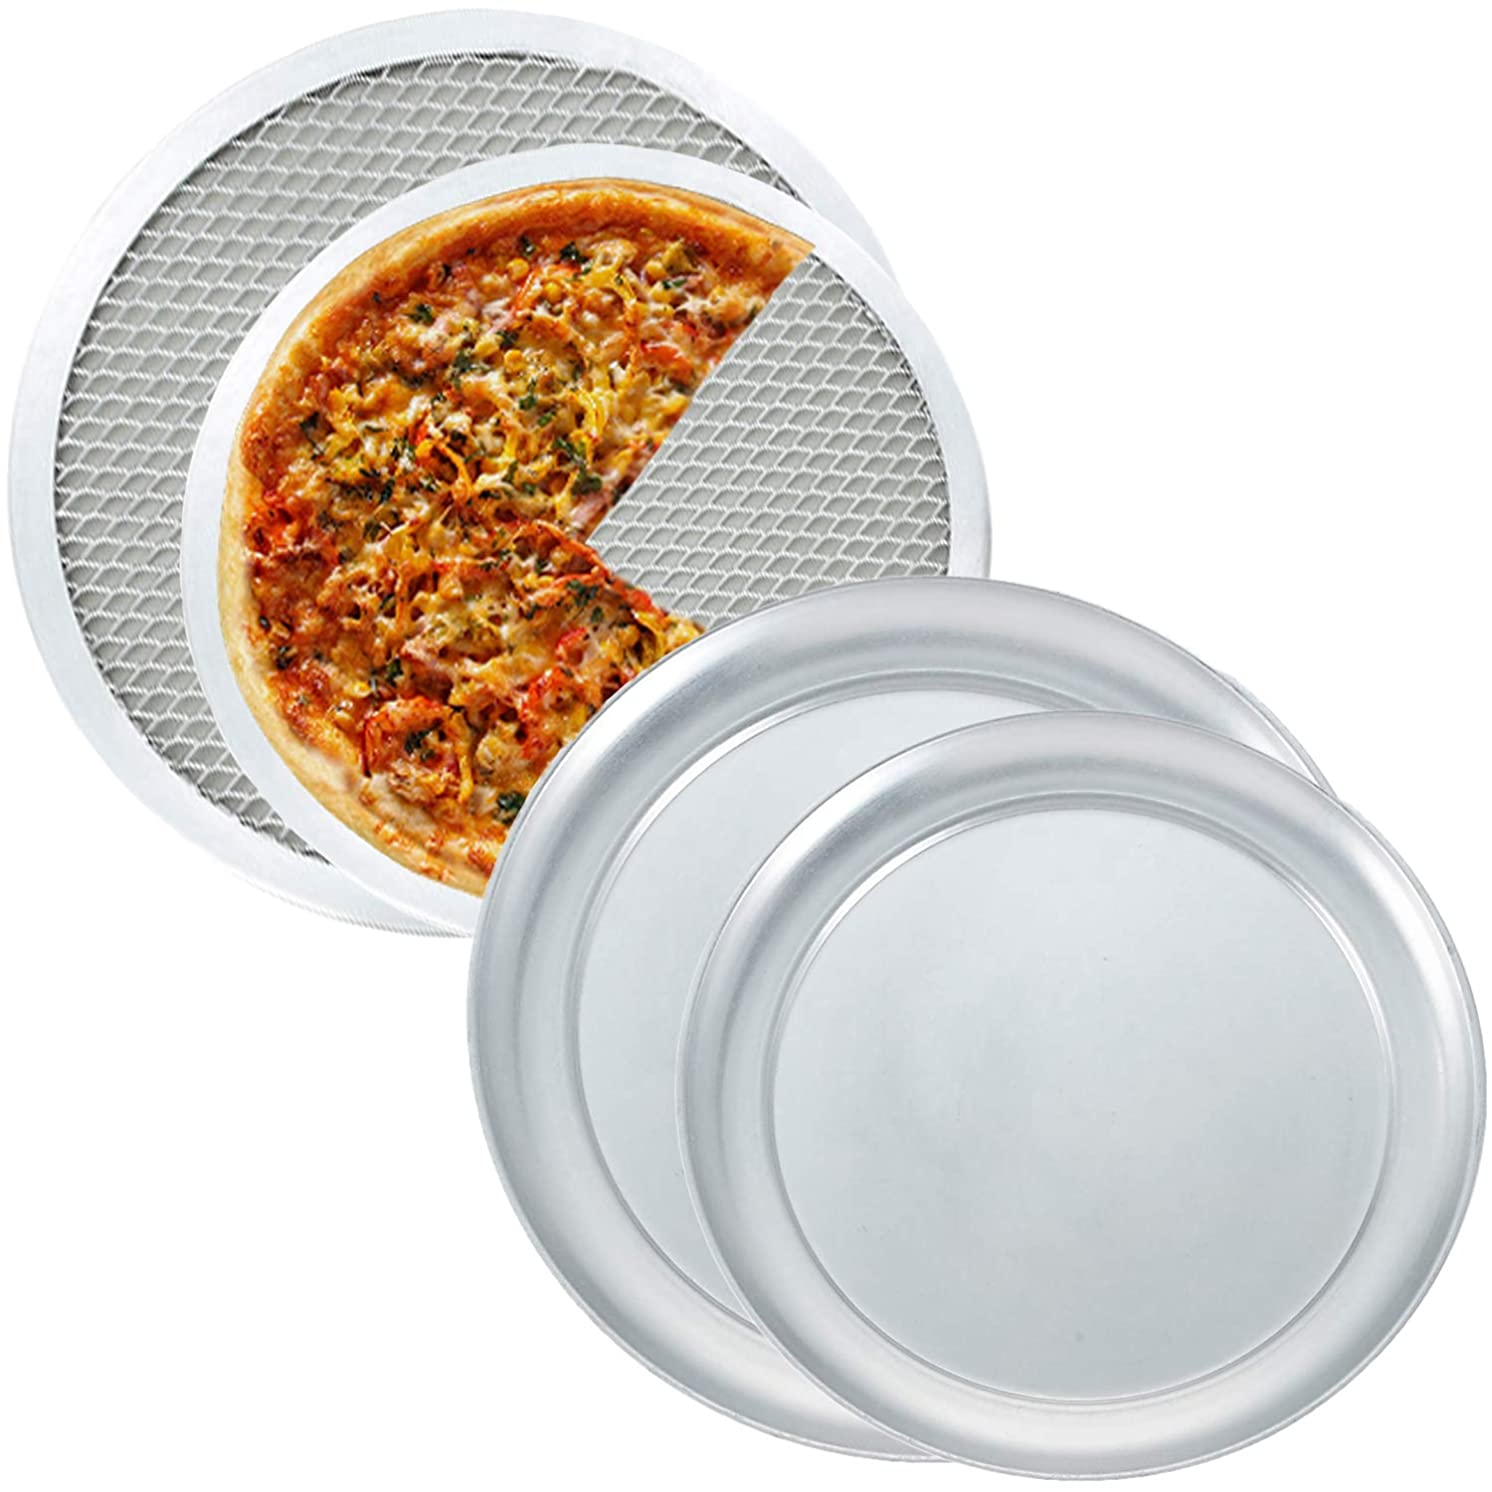 Tiger Chef Pizza Pan and Pizza Screen Set - Includes 9 inch and 12 inch Wide Rim Pizza Pans and Aluminum Pizza Screens for Oven